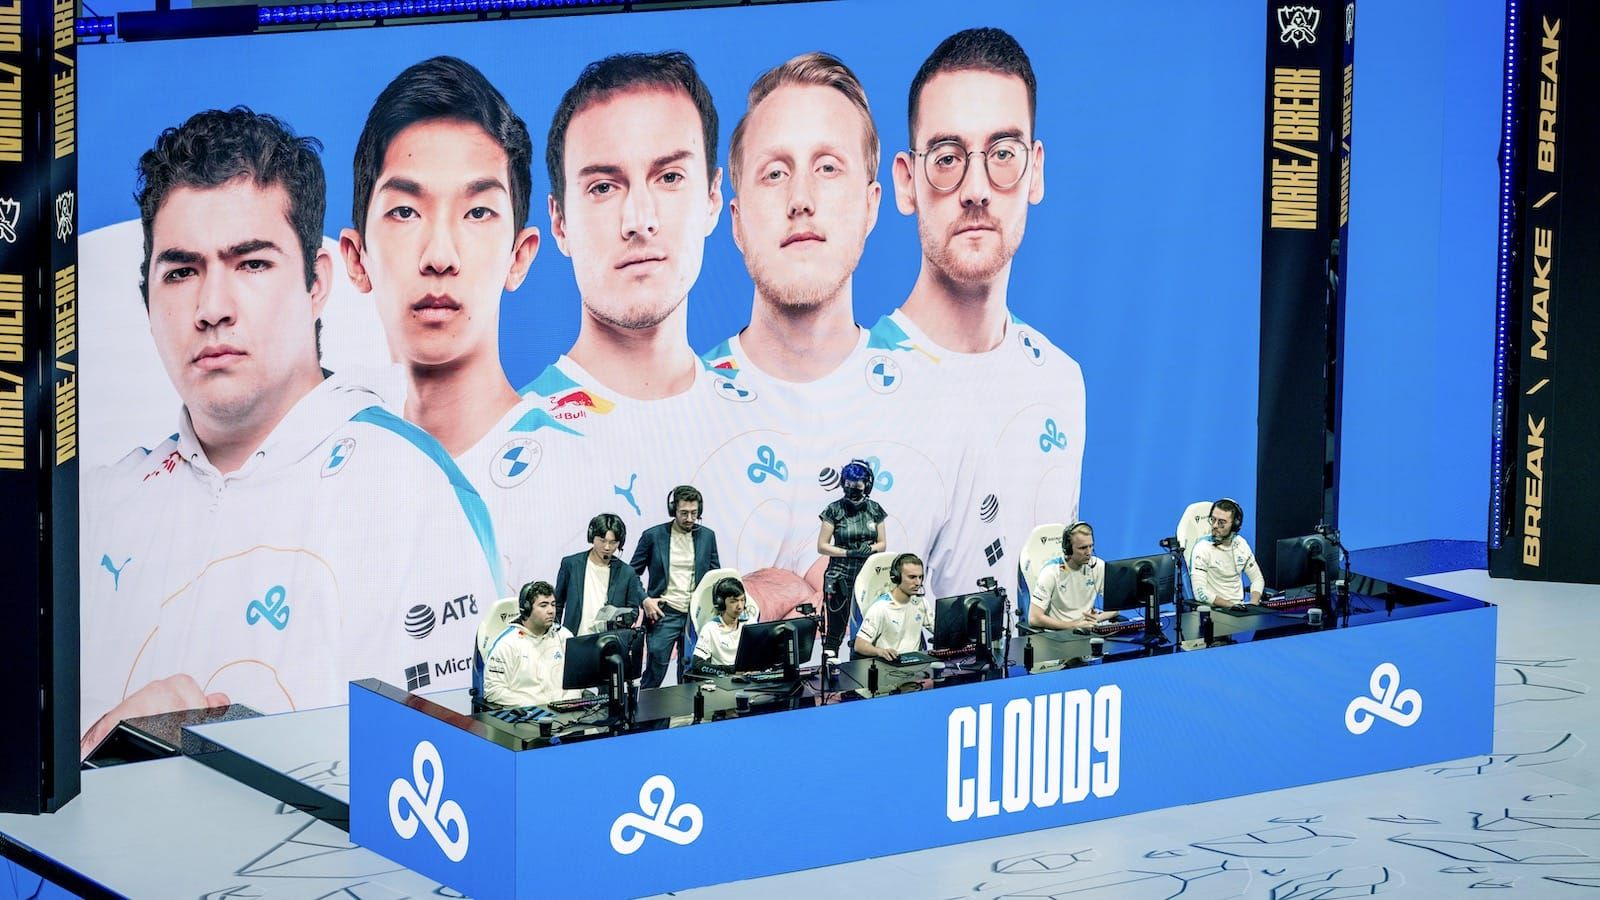 overhead view of Cloud9 League of Legends team on stage at their computers at Worlds 2021